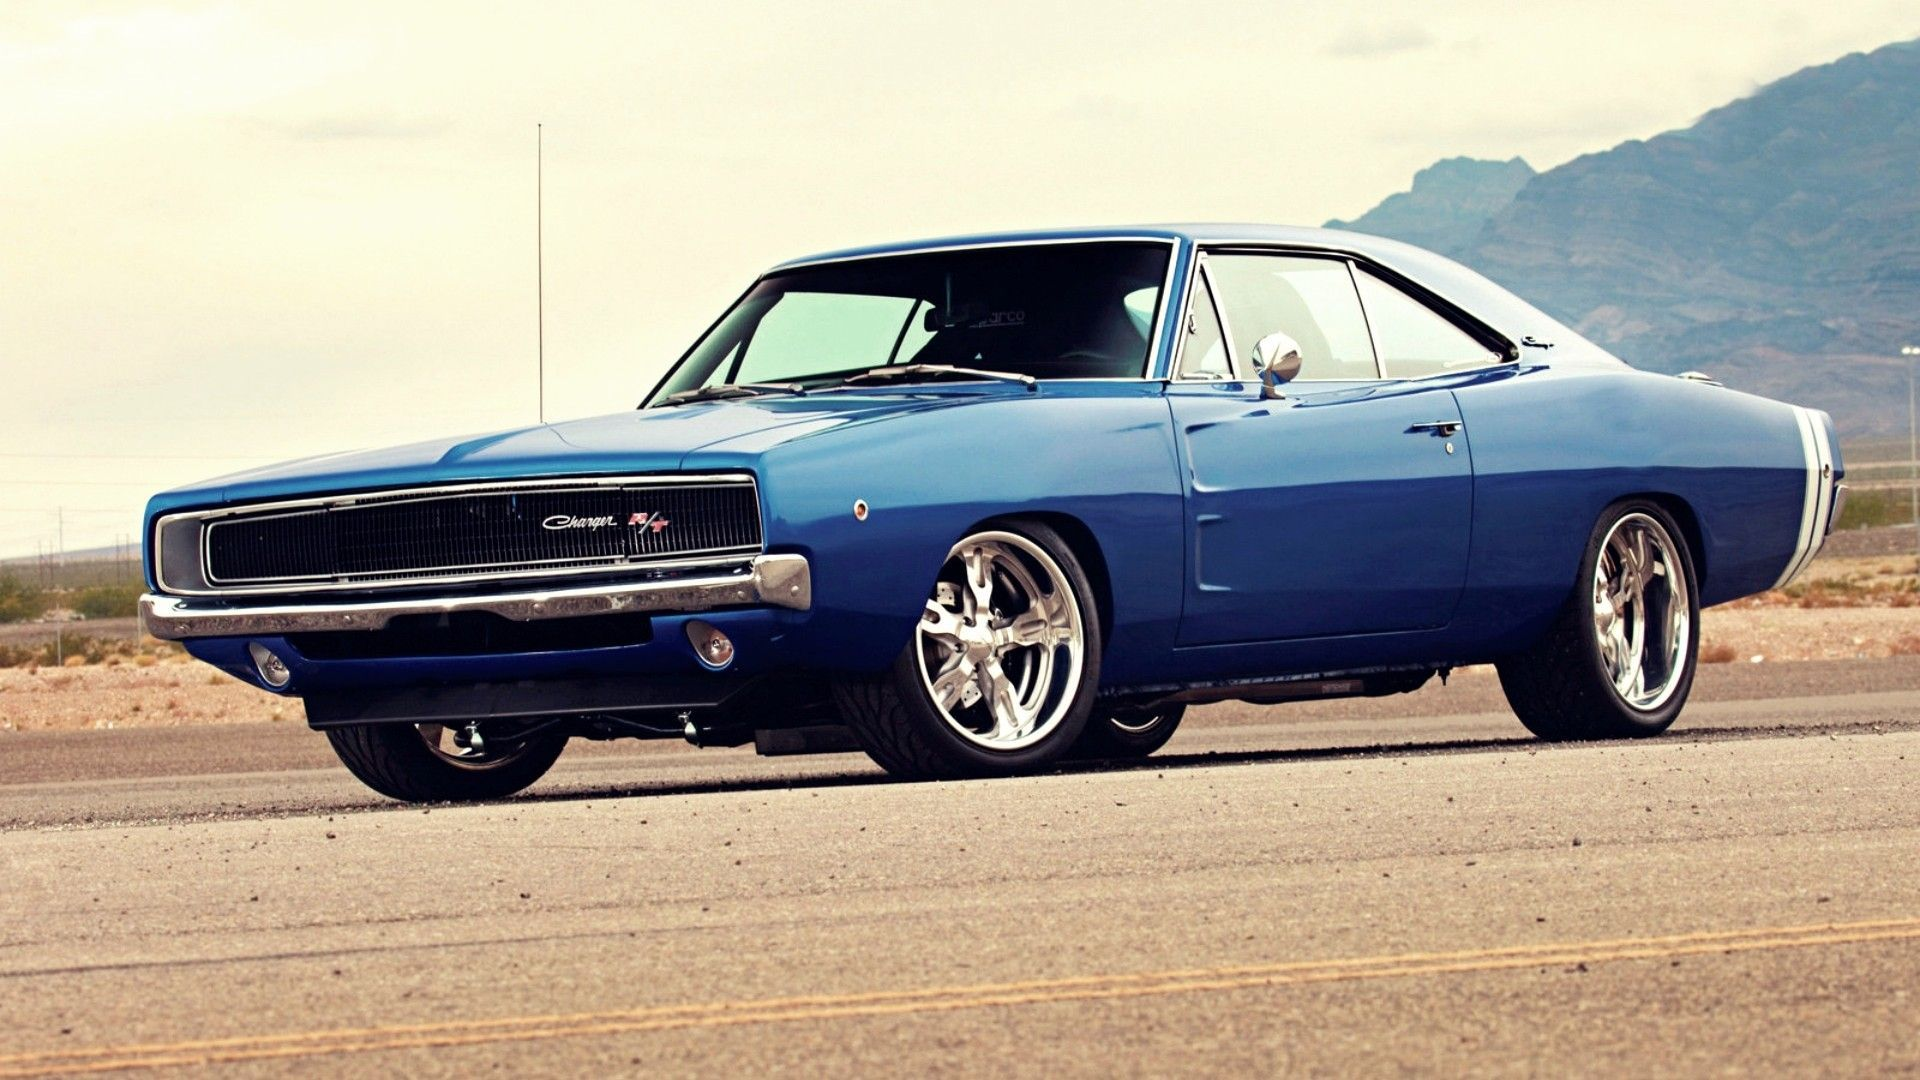 Dodge Charger  Wallpaper  Wallpapers High Definition 1920x1080